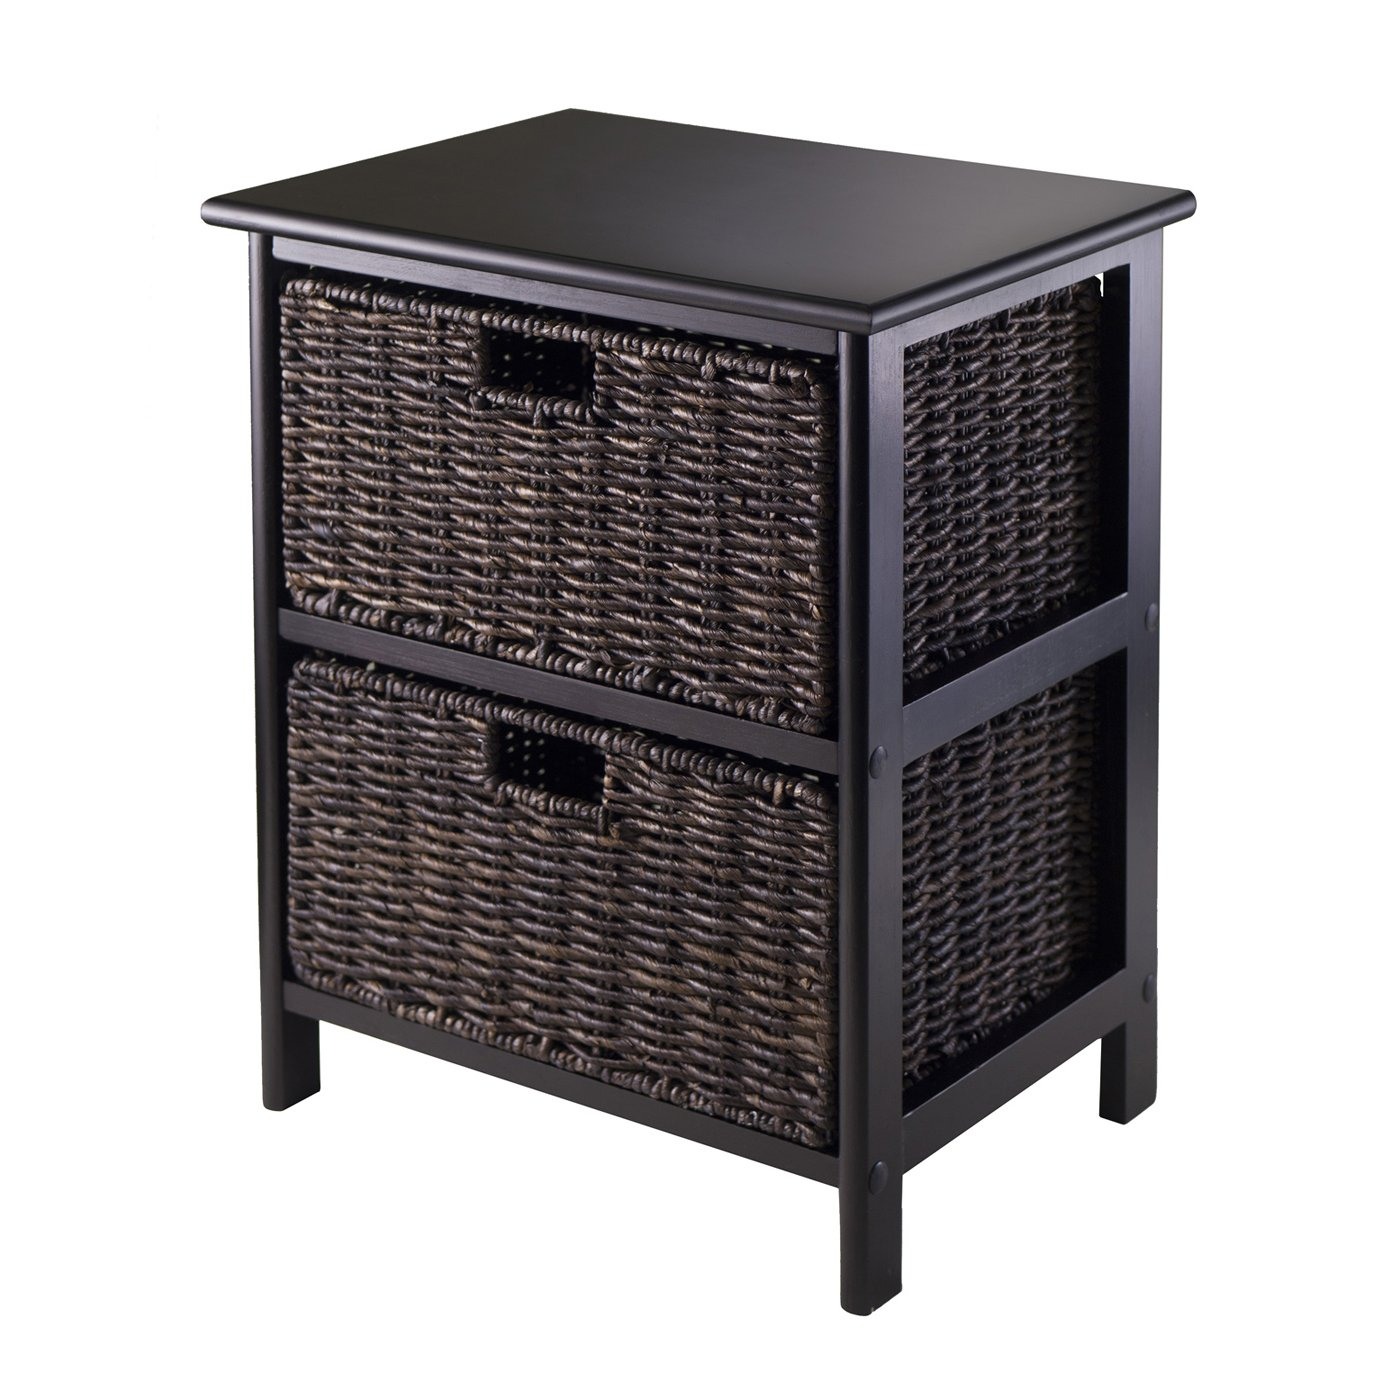 winsome wood omaha storage rack with two foldable skinny accent table baskets affordable dining sets funky chairs builders lighting wooden shelving units pier one furniture